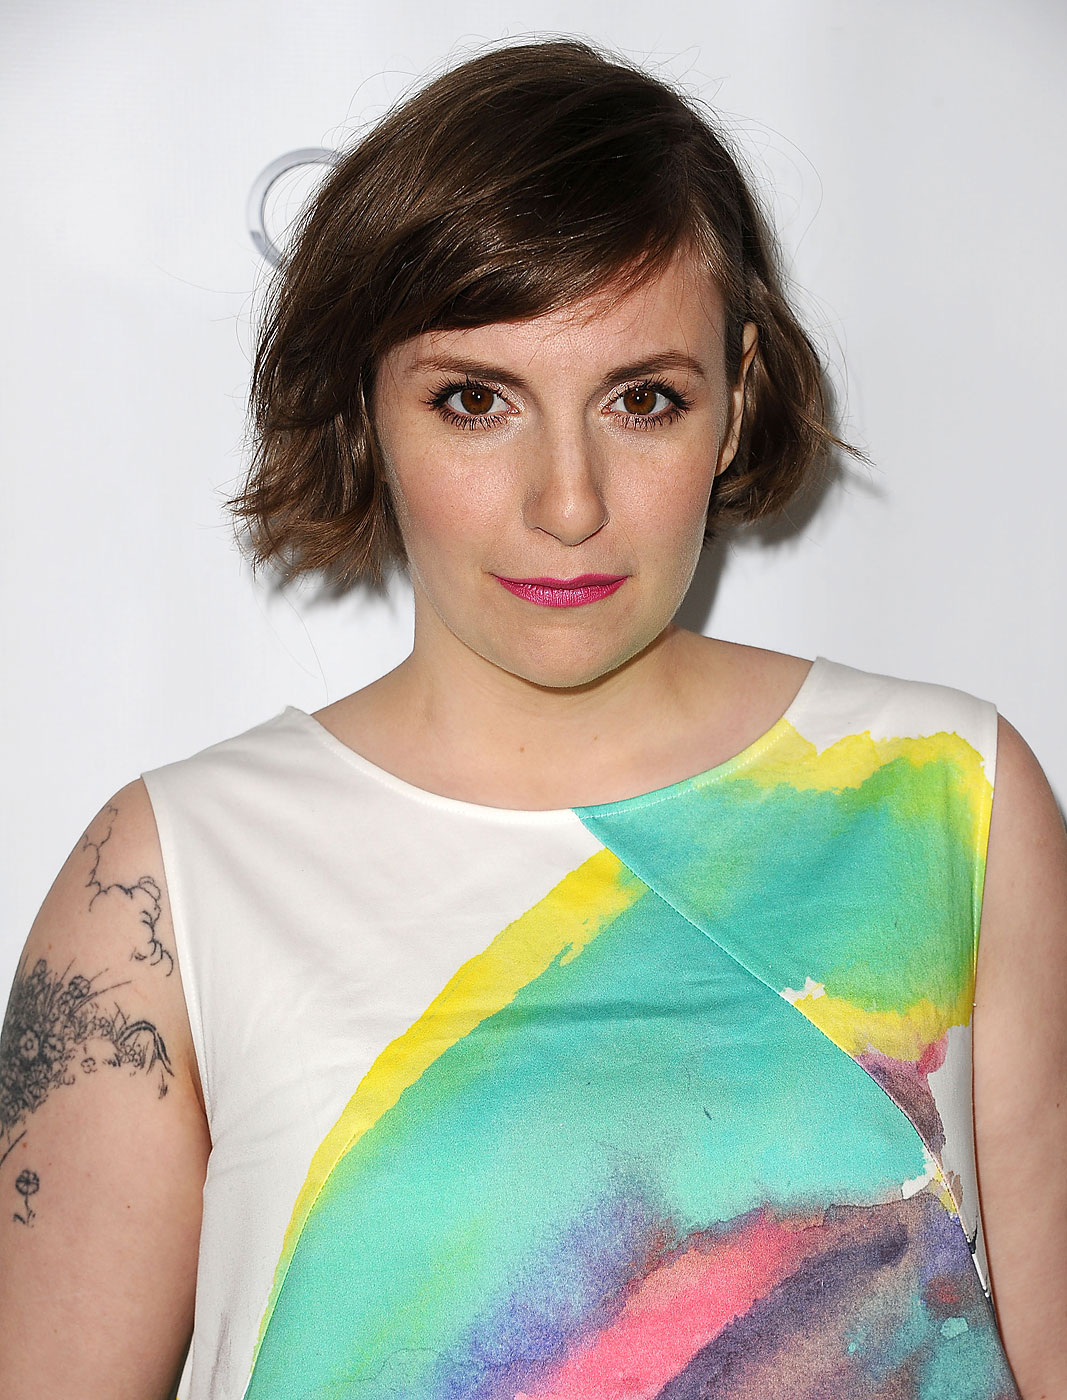 Lena Dunham attends an evening with Girls at Leonard H. Goldenson Theatre on March 13, 2014 in North Hollywood, California.